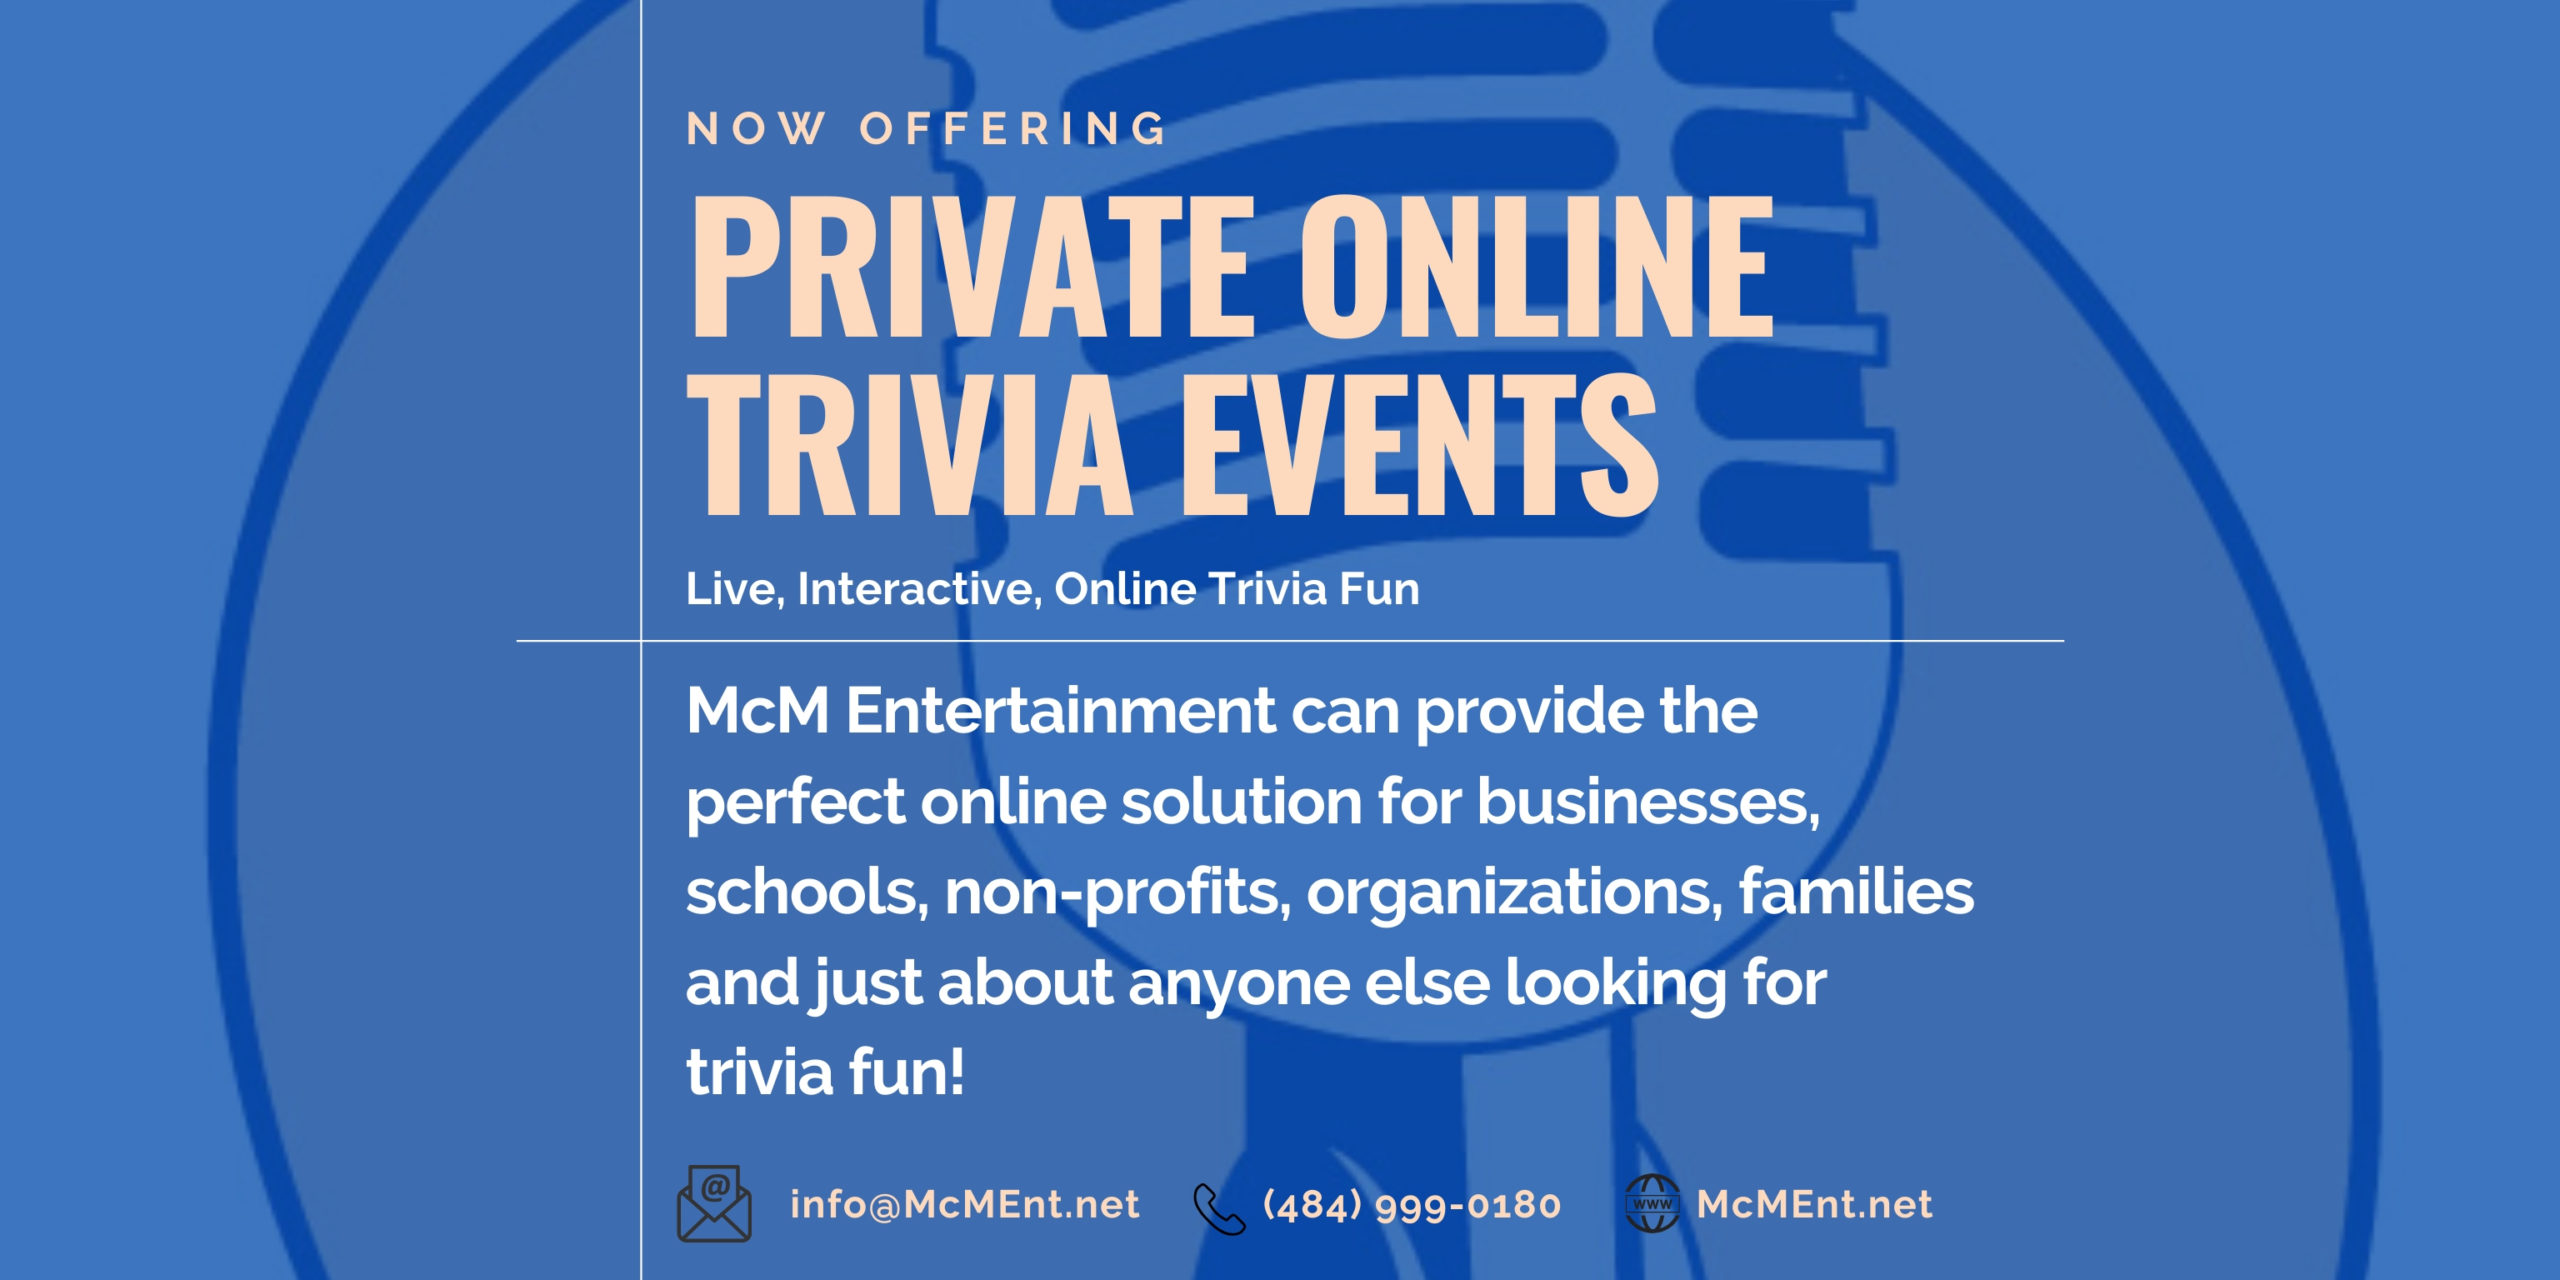 Book your private virtual trivia event now